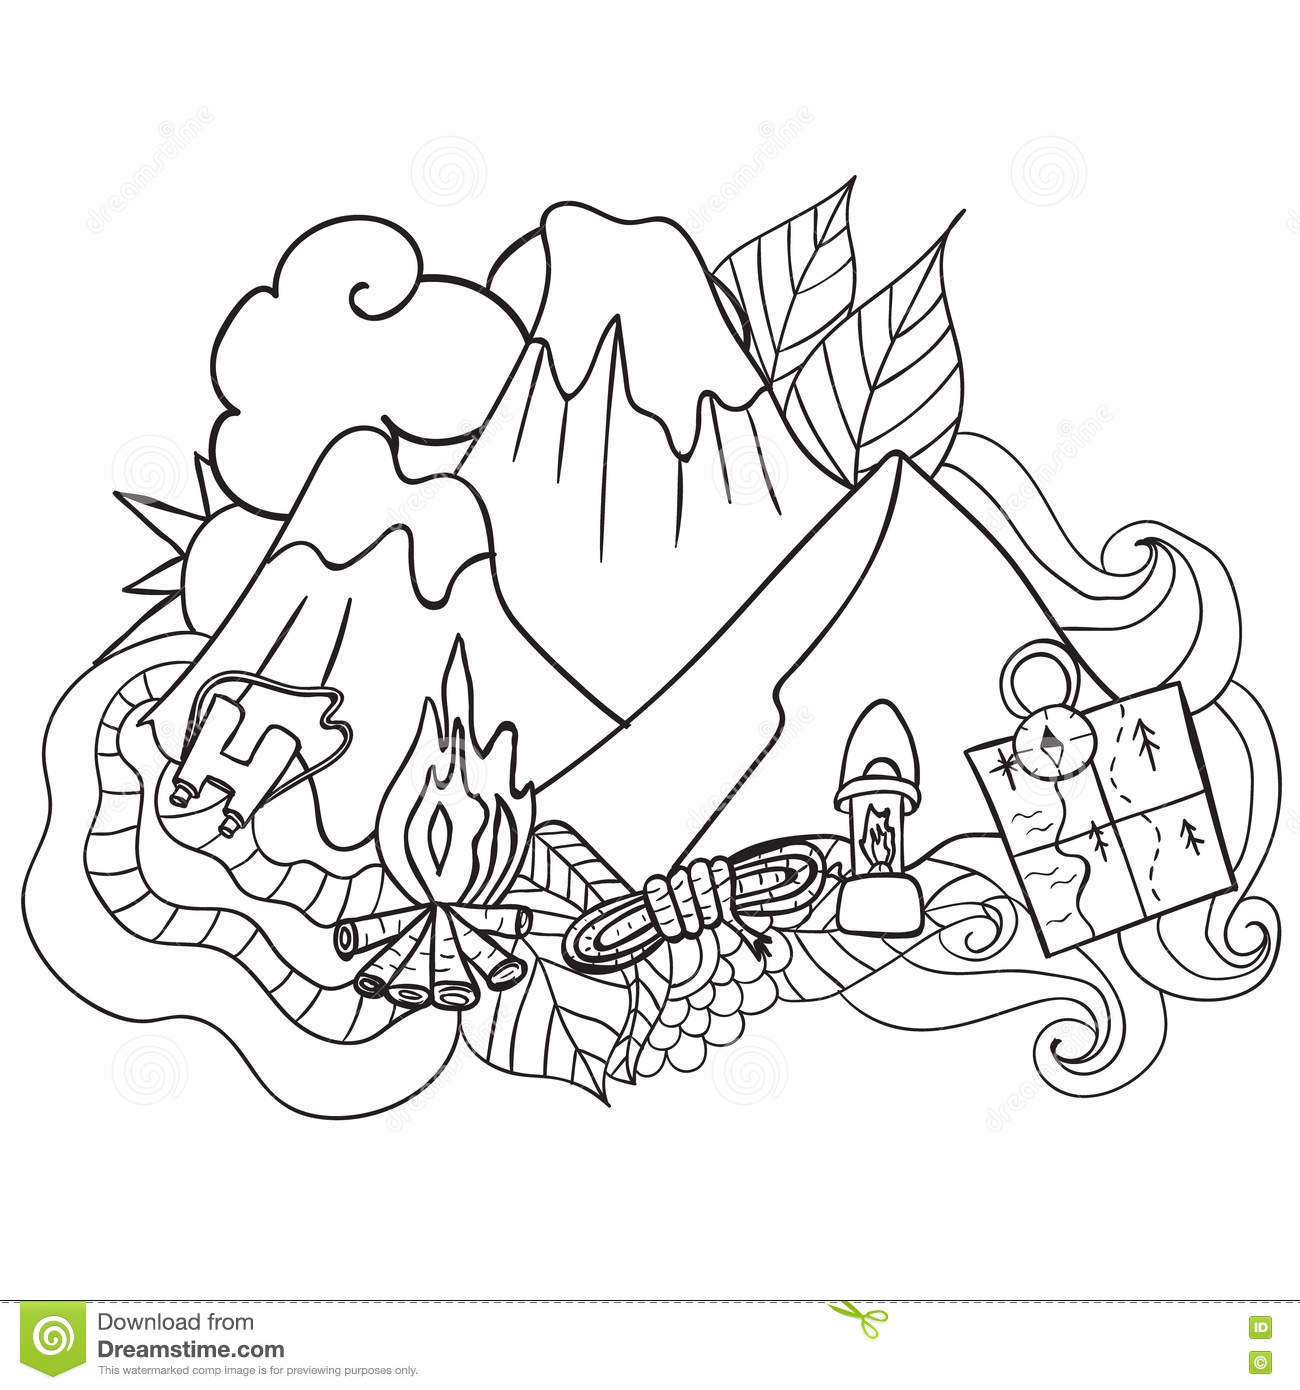 recreation tourism and camping hand drawn doodle elements